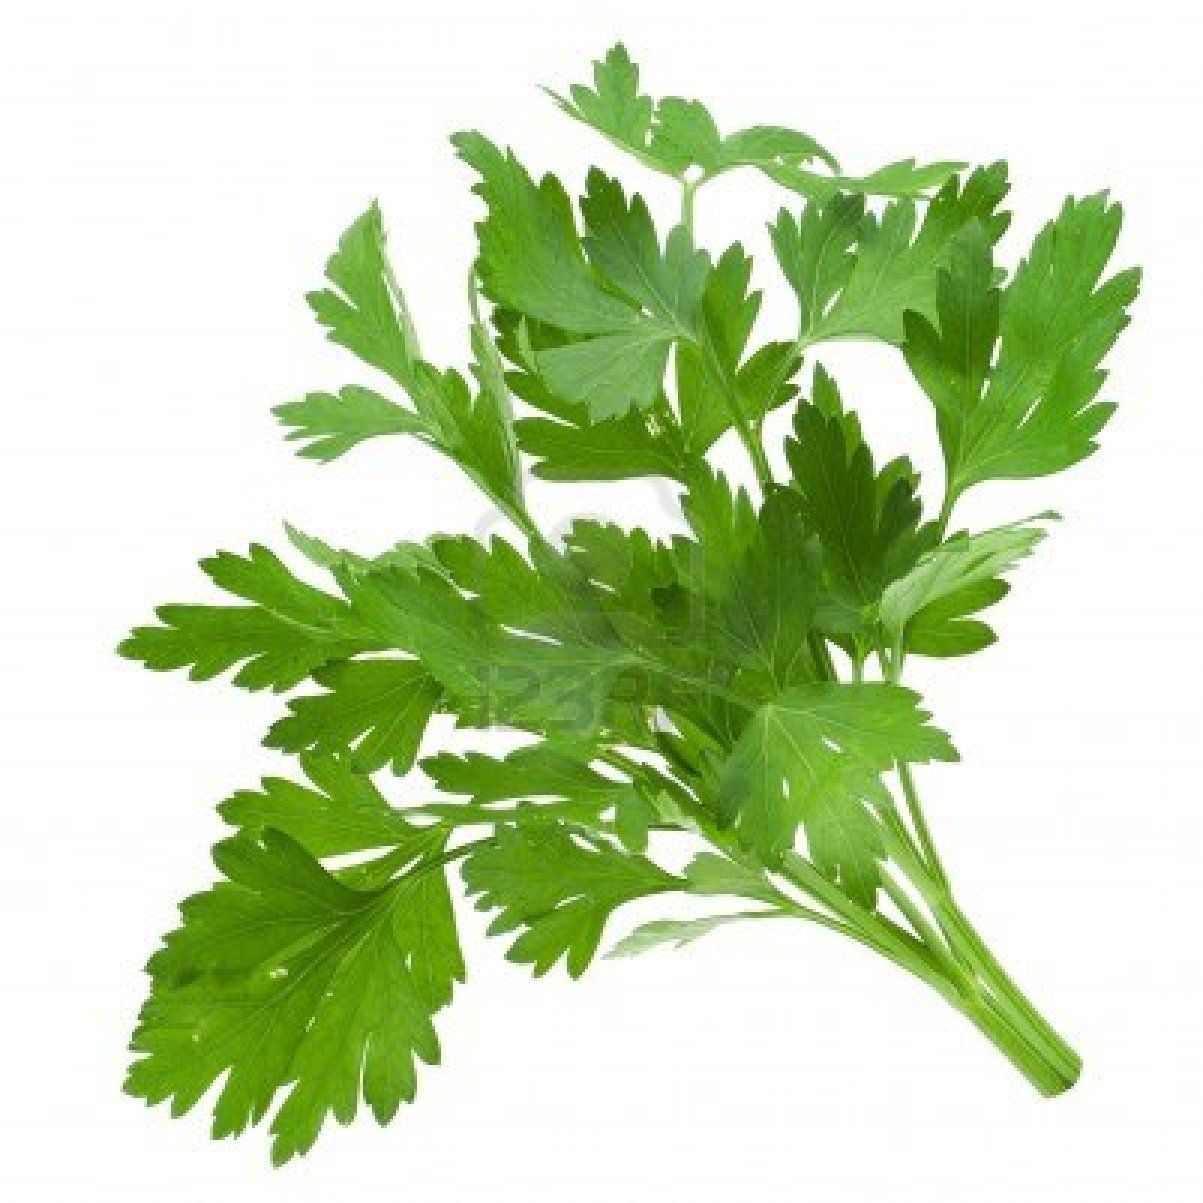 Parsley - give sparingly with plenty of water (high in calcium and can cause urine to be thick and sludgy)